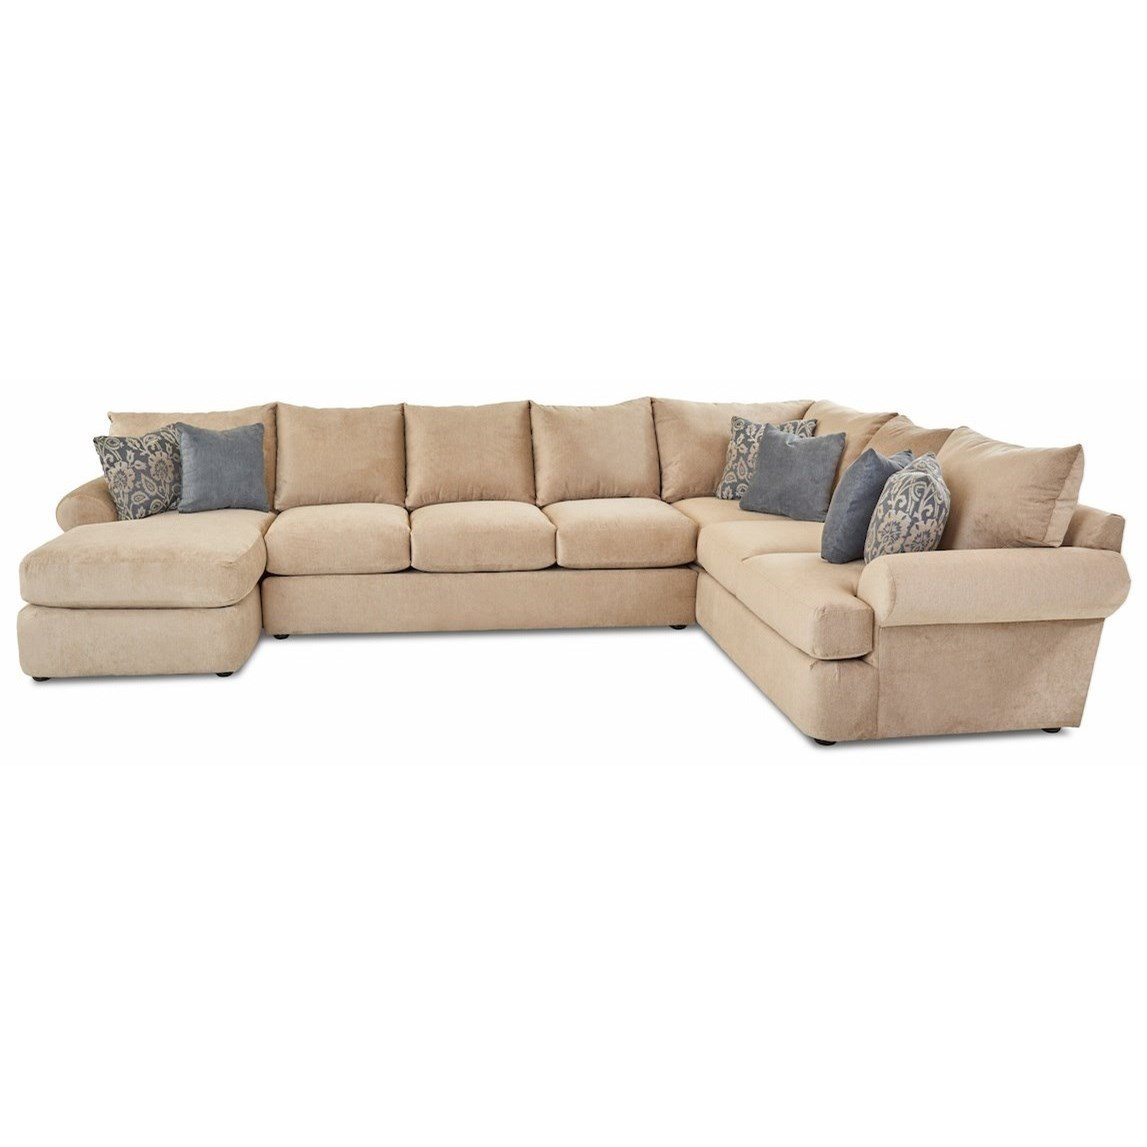 cora 3 piece sectional sofa w laf chaise